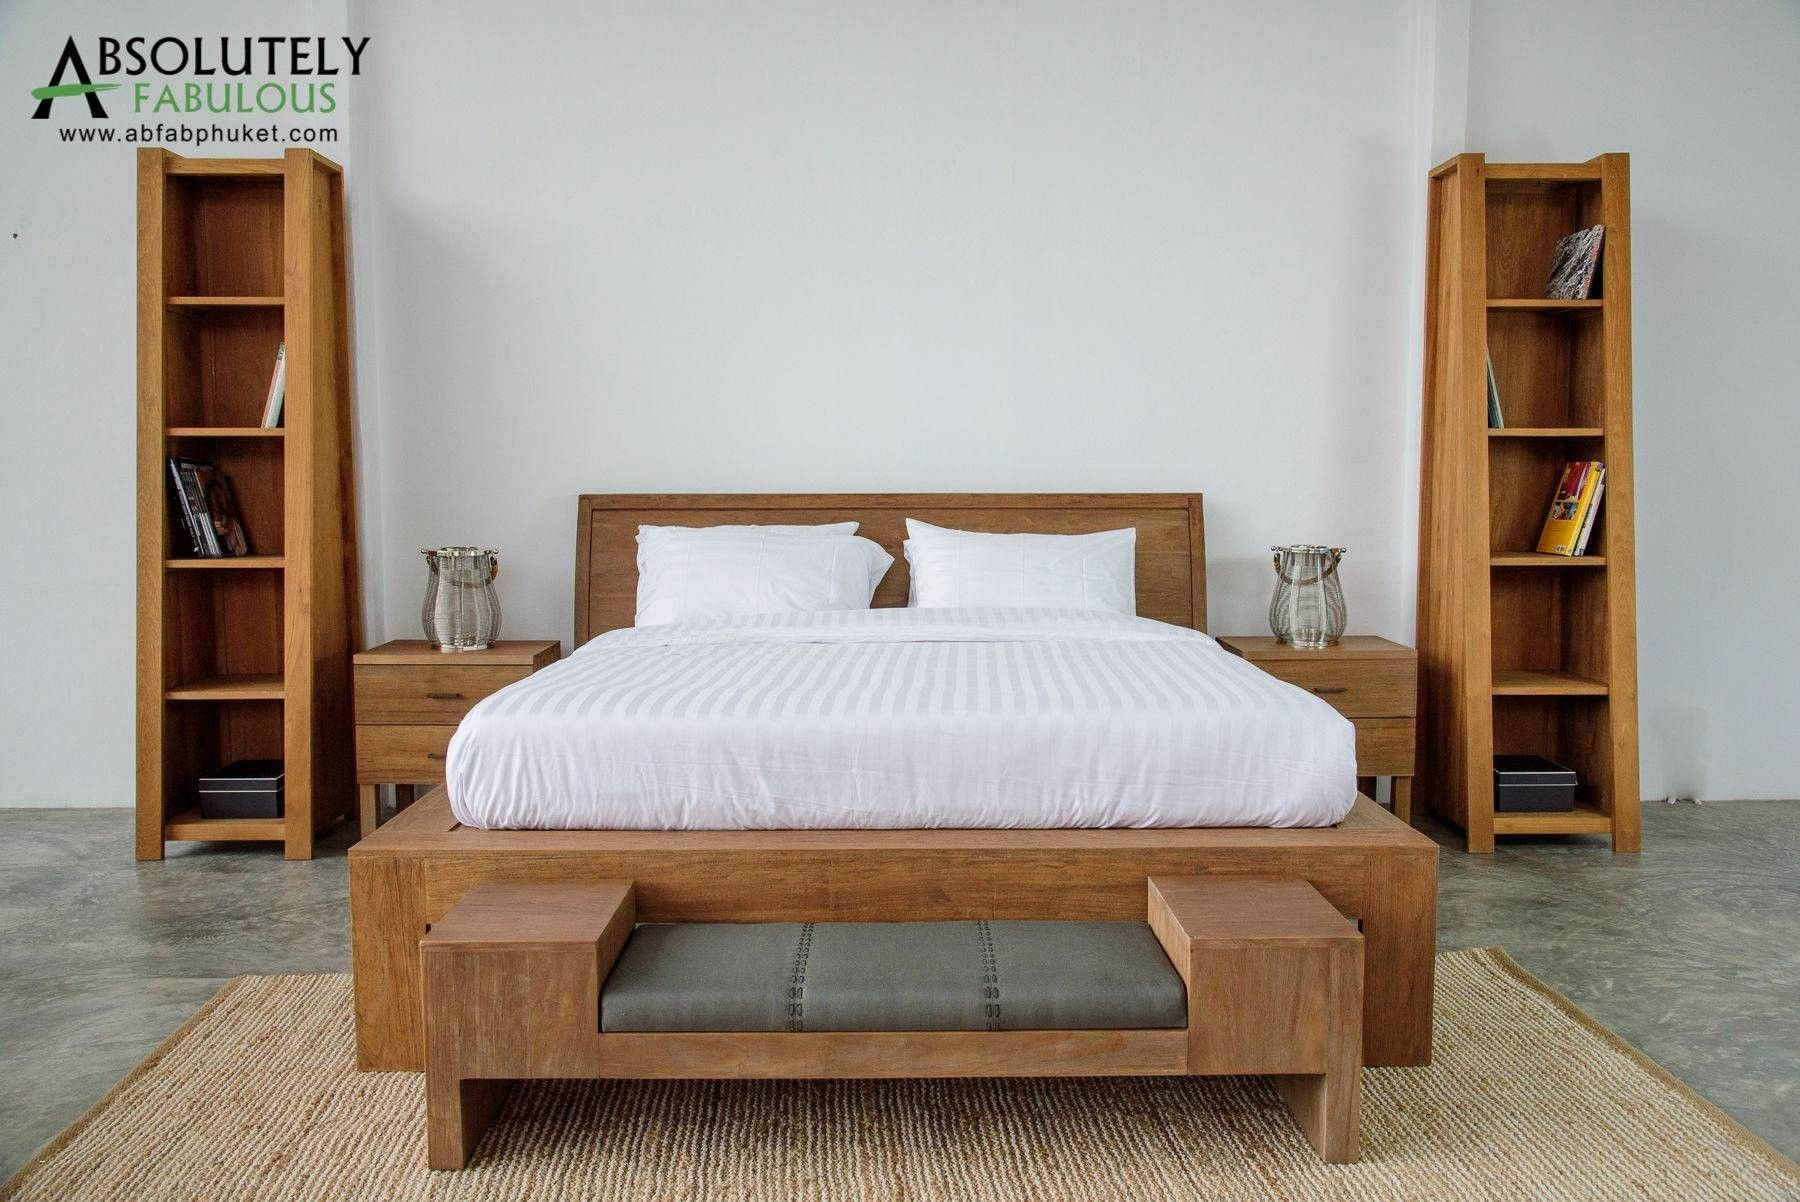 30 Lovely Wooden Crate Bed Frame Which Popular This Year Diy Bed